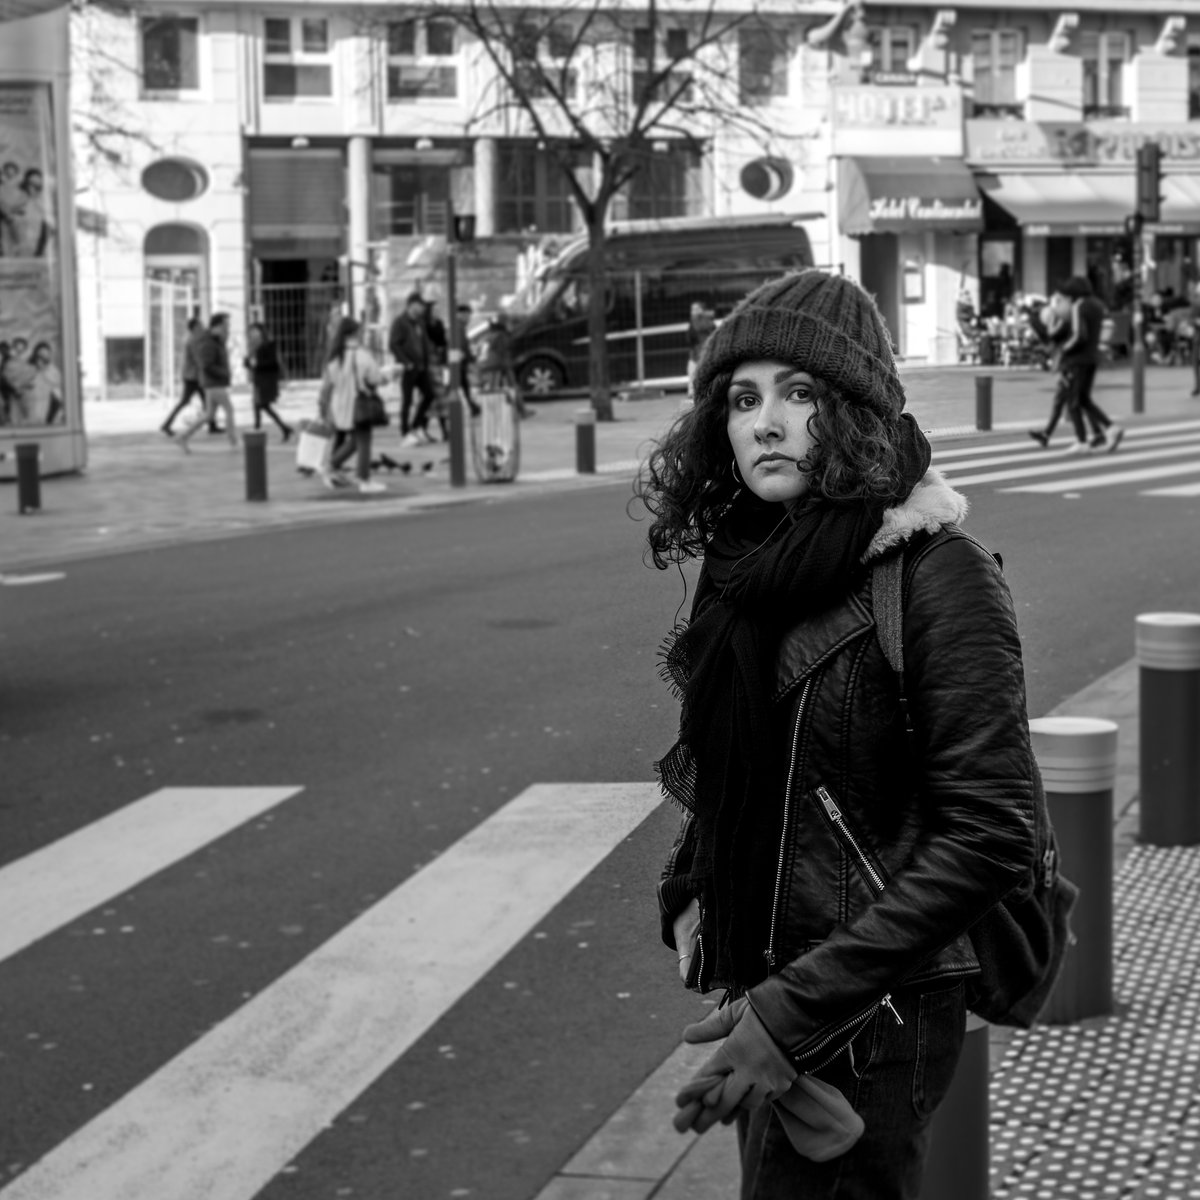 Curly haired girl about to cross the street  #lille #girl #curls #curlyhair #streetphotography #leica #leicam10 #monochrom #blackandwhite #bnw #blackandwhitephotography #photoeverydaypic.twitter.com/BKHSi4KvAE